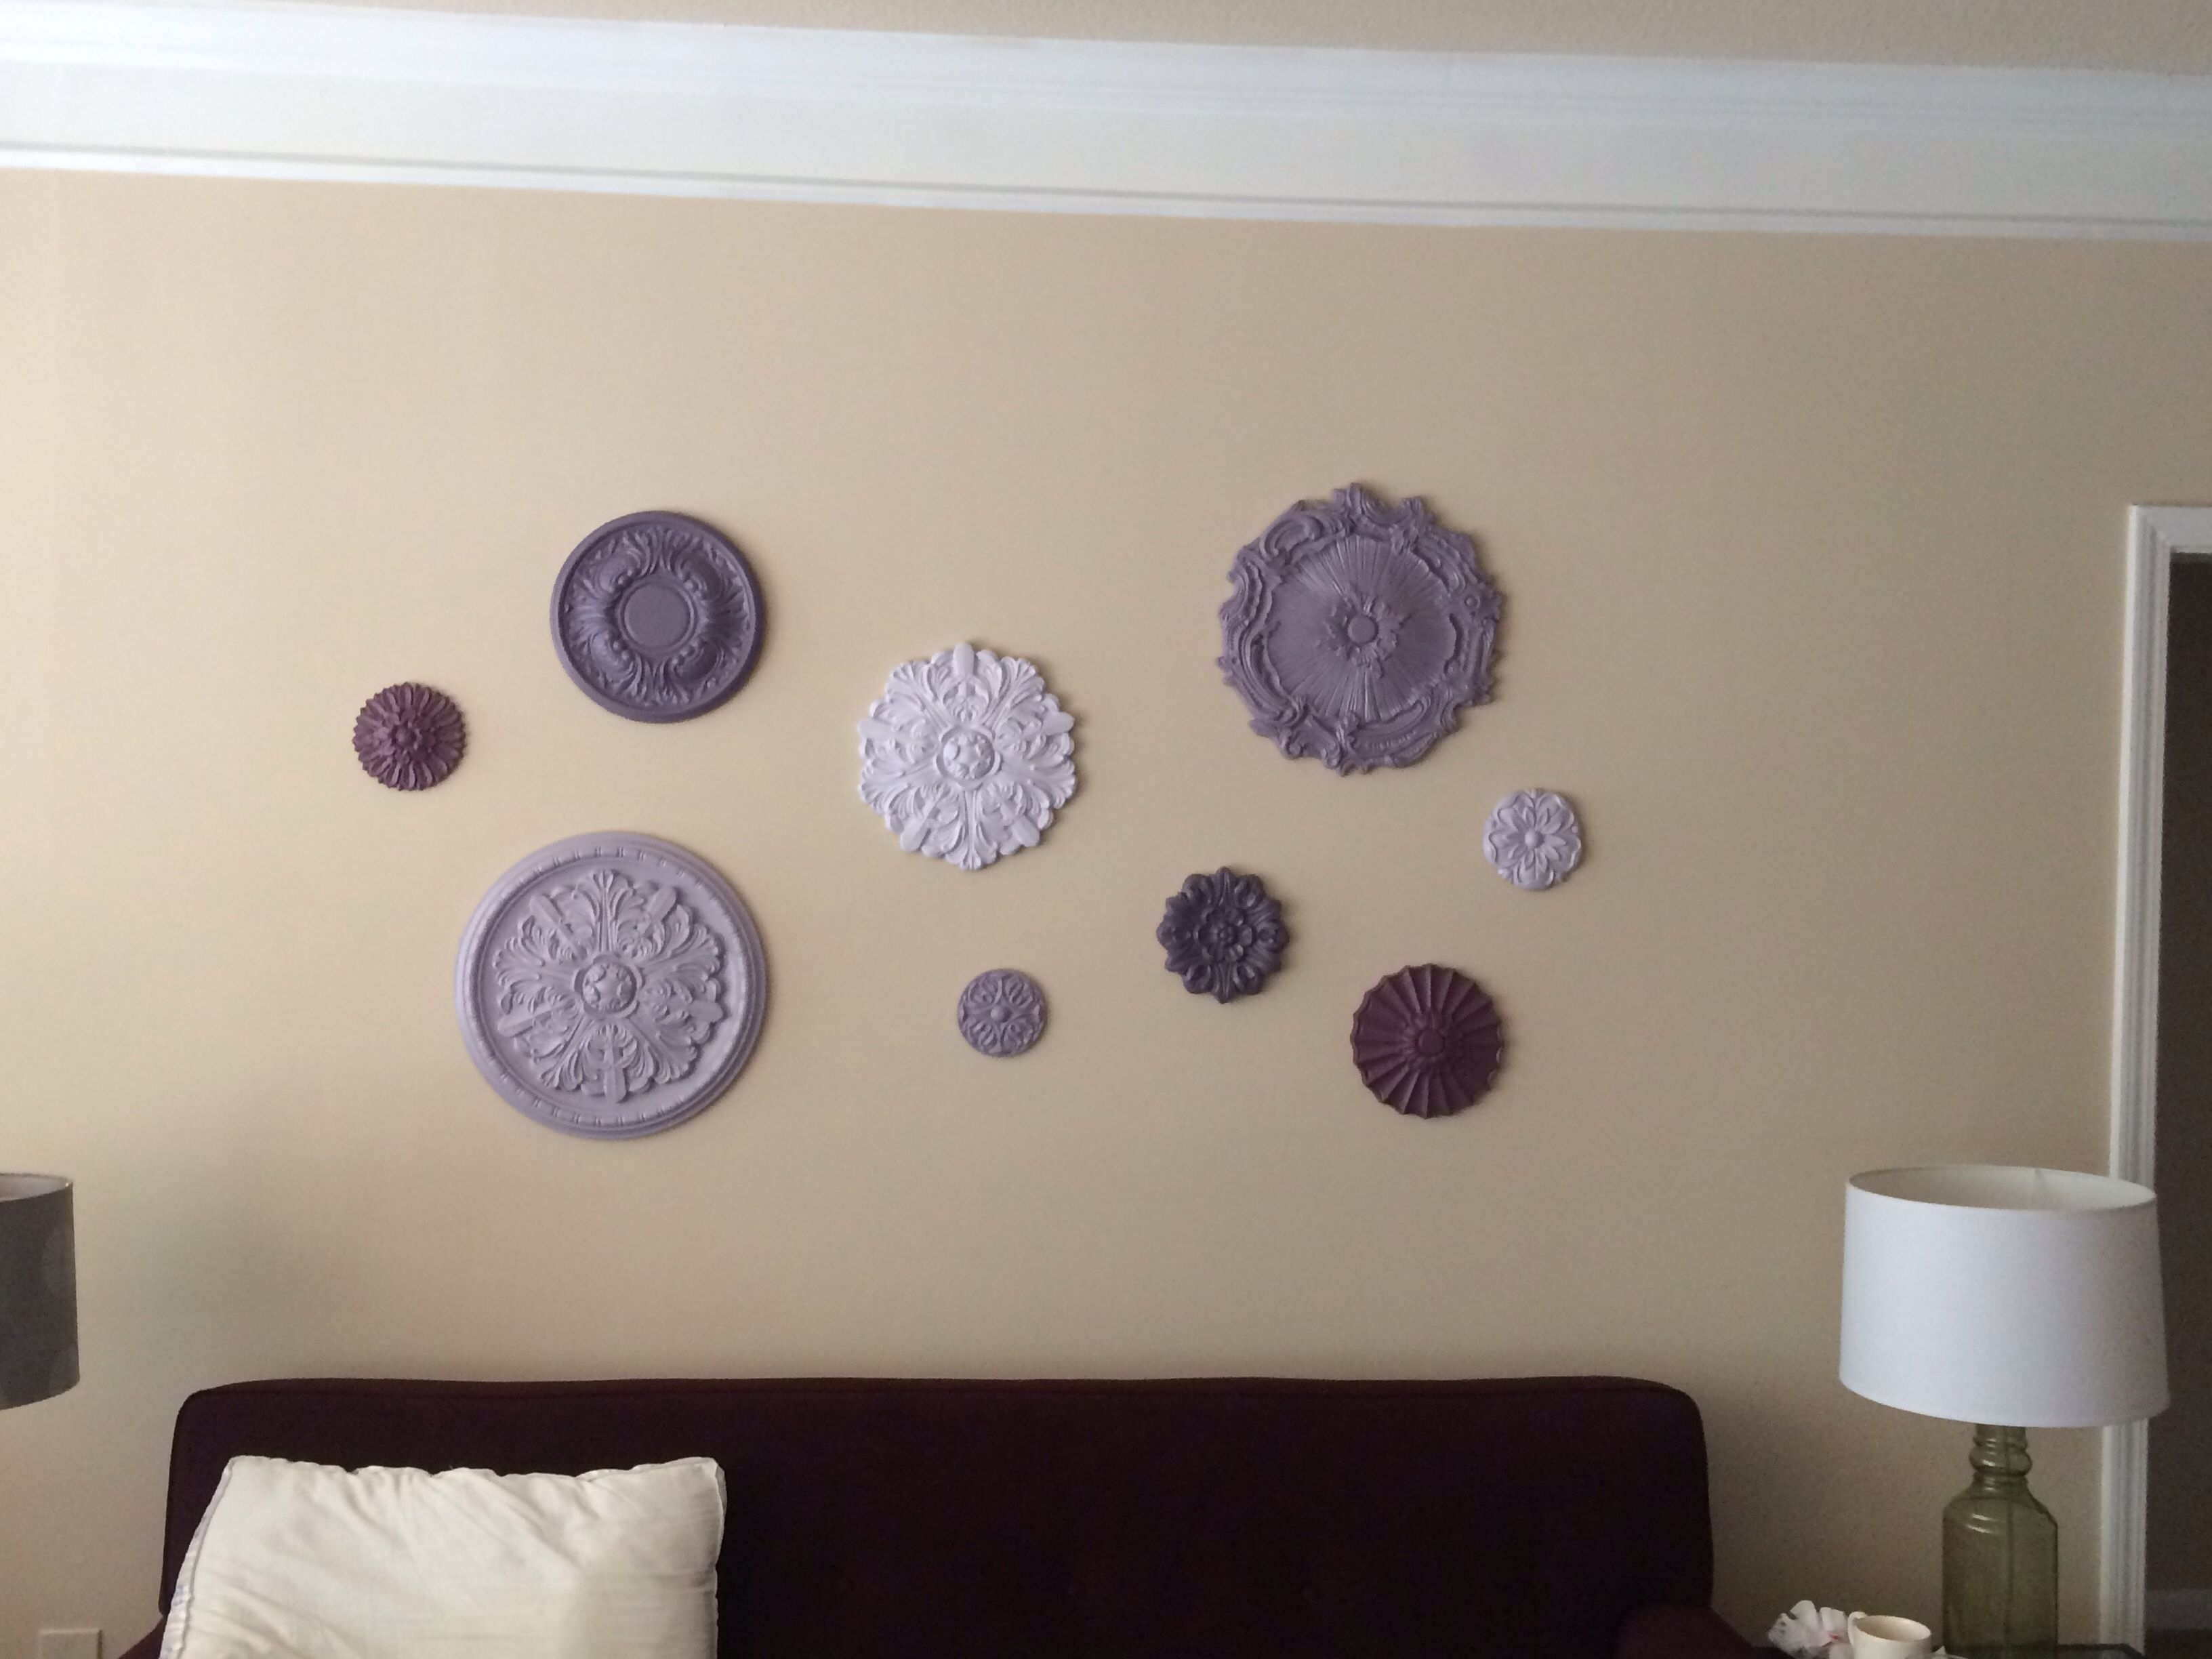 Ceiling Medallion Wall Art | Home And Decor | Pinterest | Ceiling Within Most Recent Ceiling Medallion Wall Art (Gallery 1 of 15)